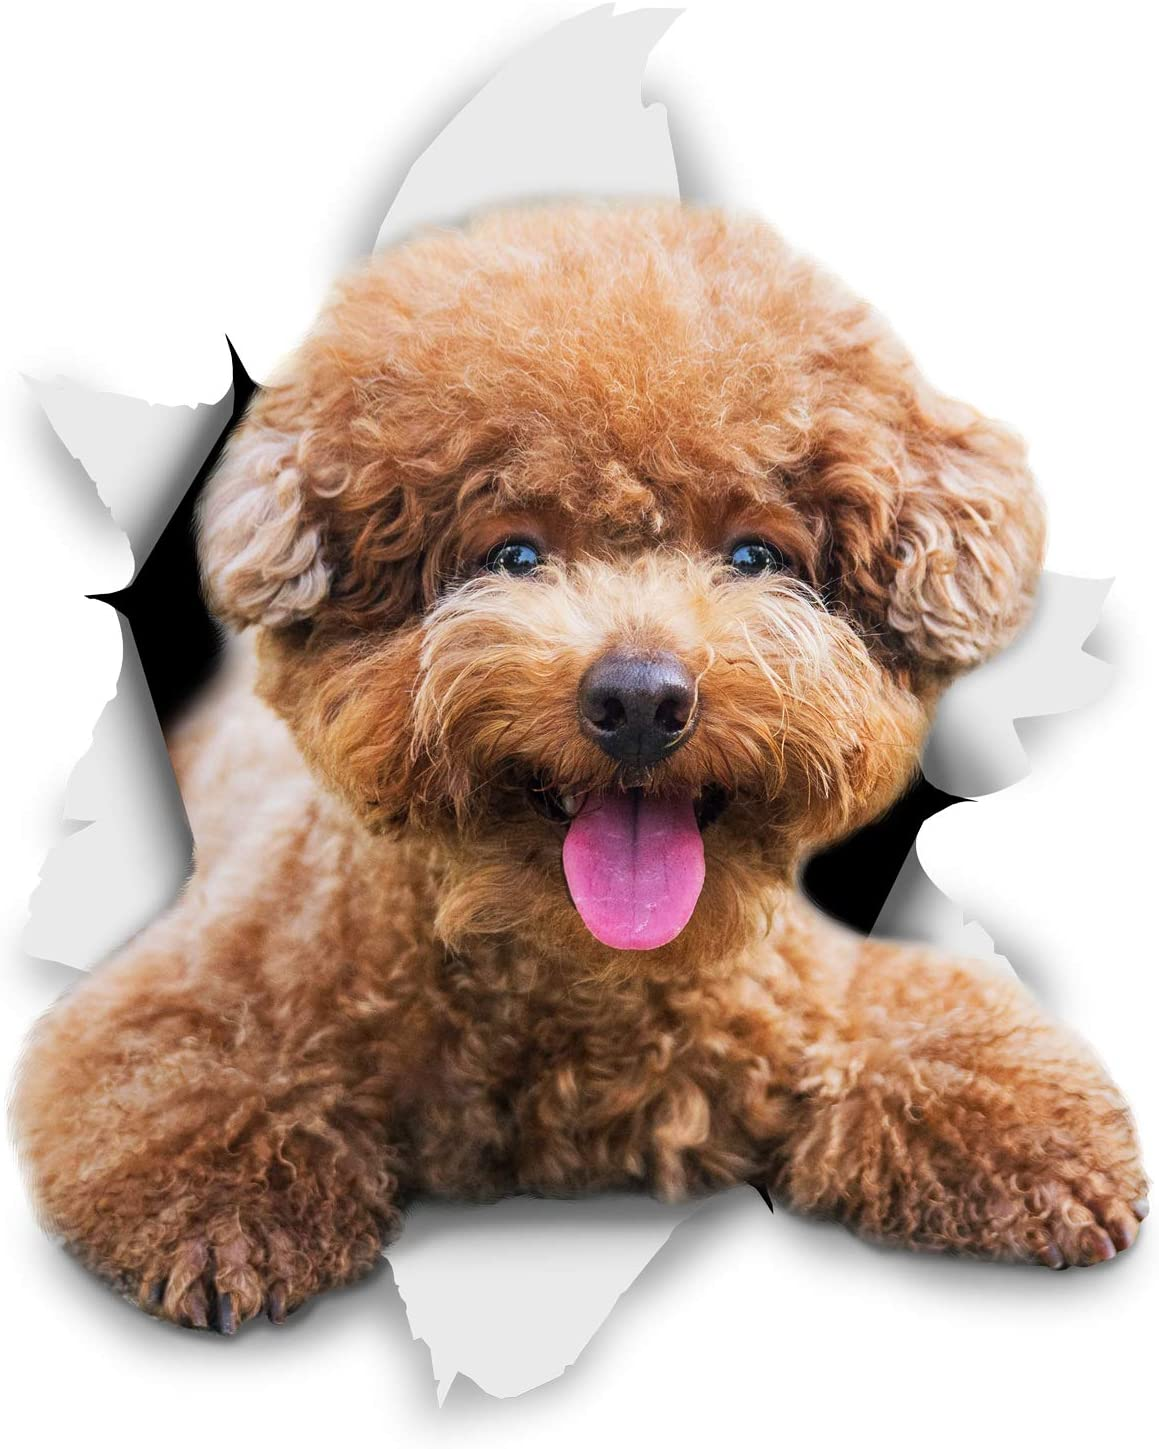 Winston & Bear 3D Dog Stickers - 2 Pack - Smiling Brown Poodle for Wall, Fridge, Toilet and More - Retail Packaged Brown Poodle Dog Stickers